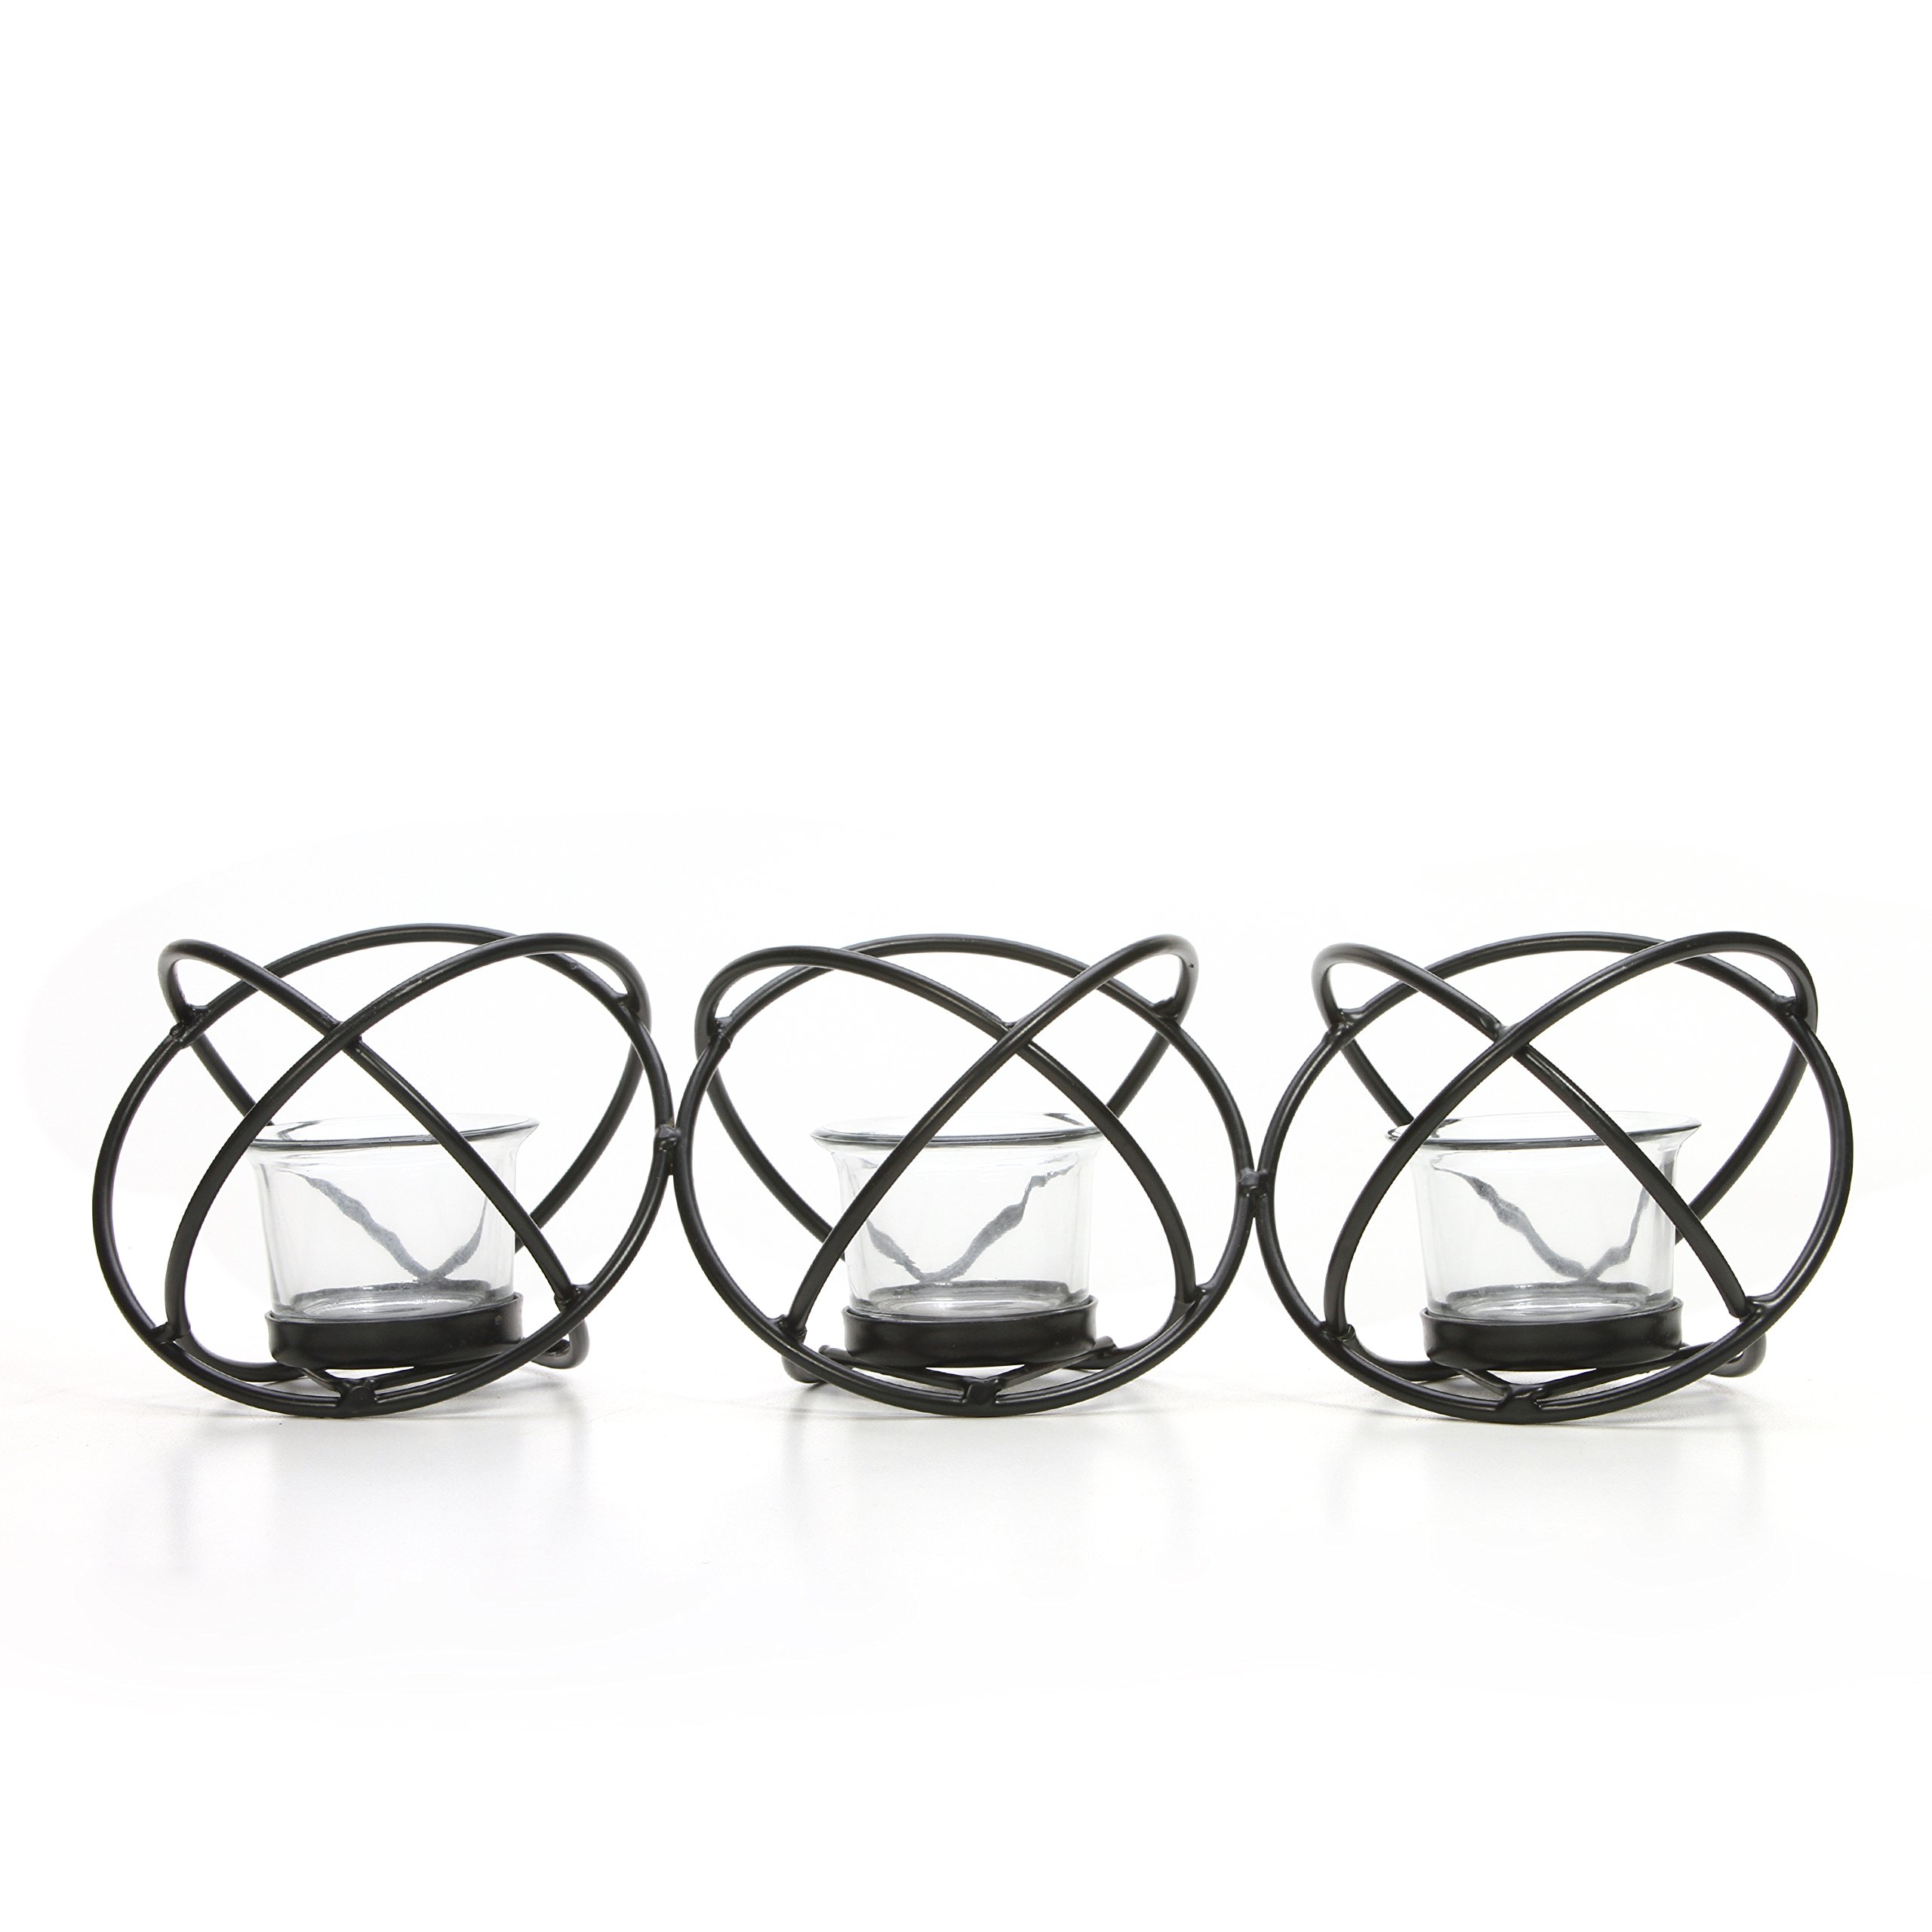 Hosley Modern Art Hand Made by Artisans 14-Inch Long Black Iron Candleholder with Clear Glass Votive Cups, Set of 3 with Tea Lights O9